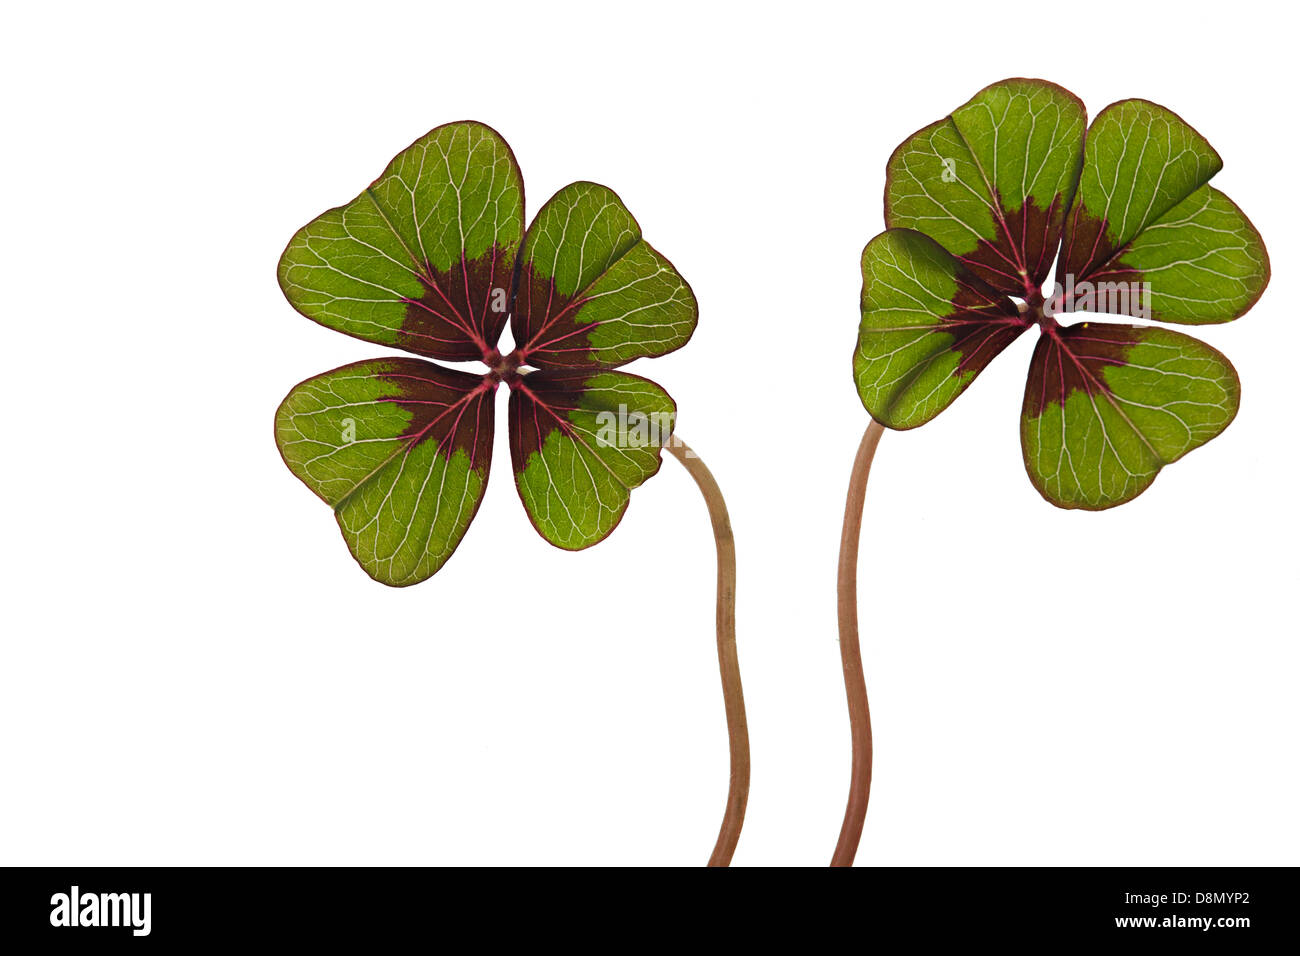 Green four leaved clover on white - Stock Image